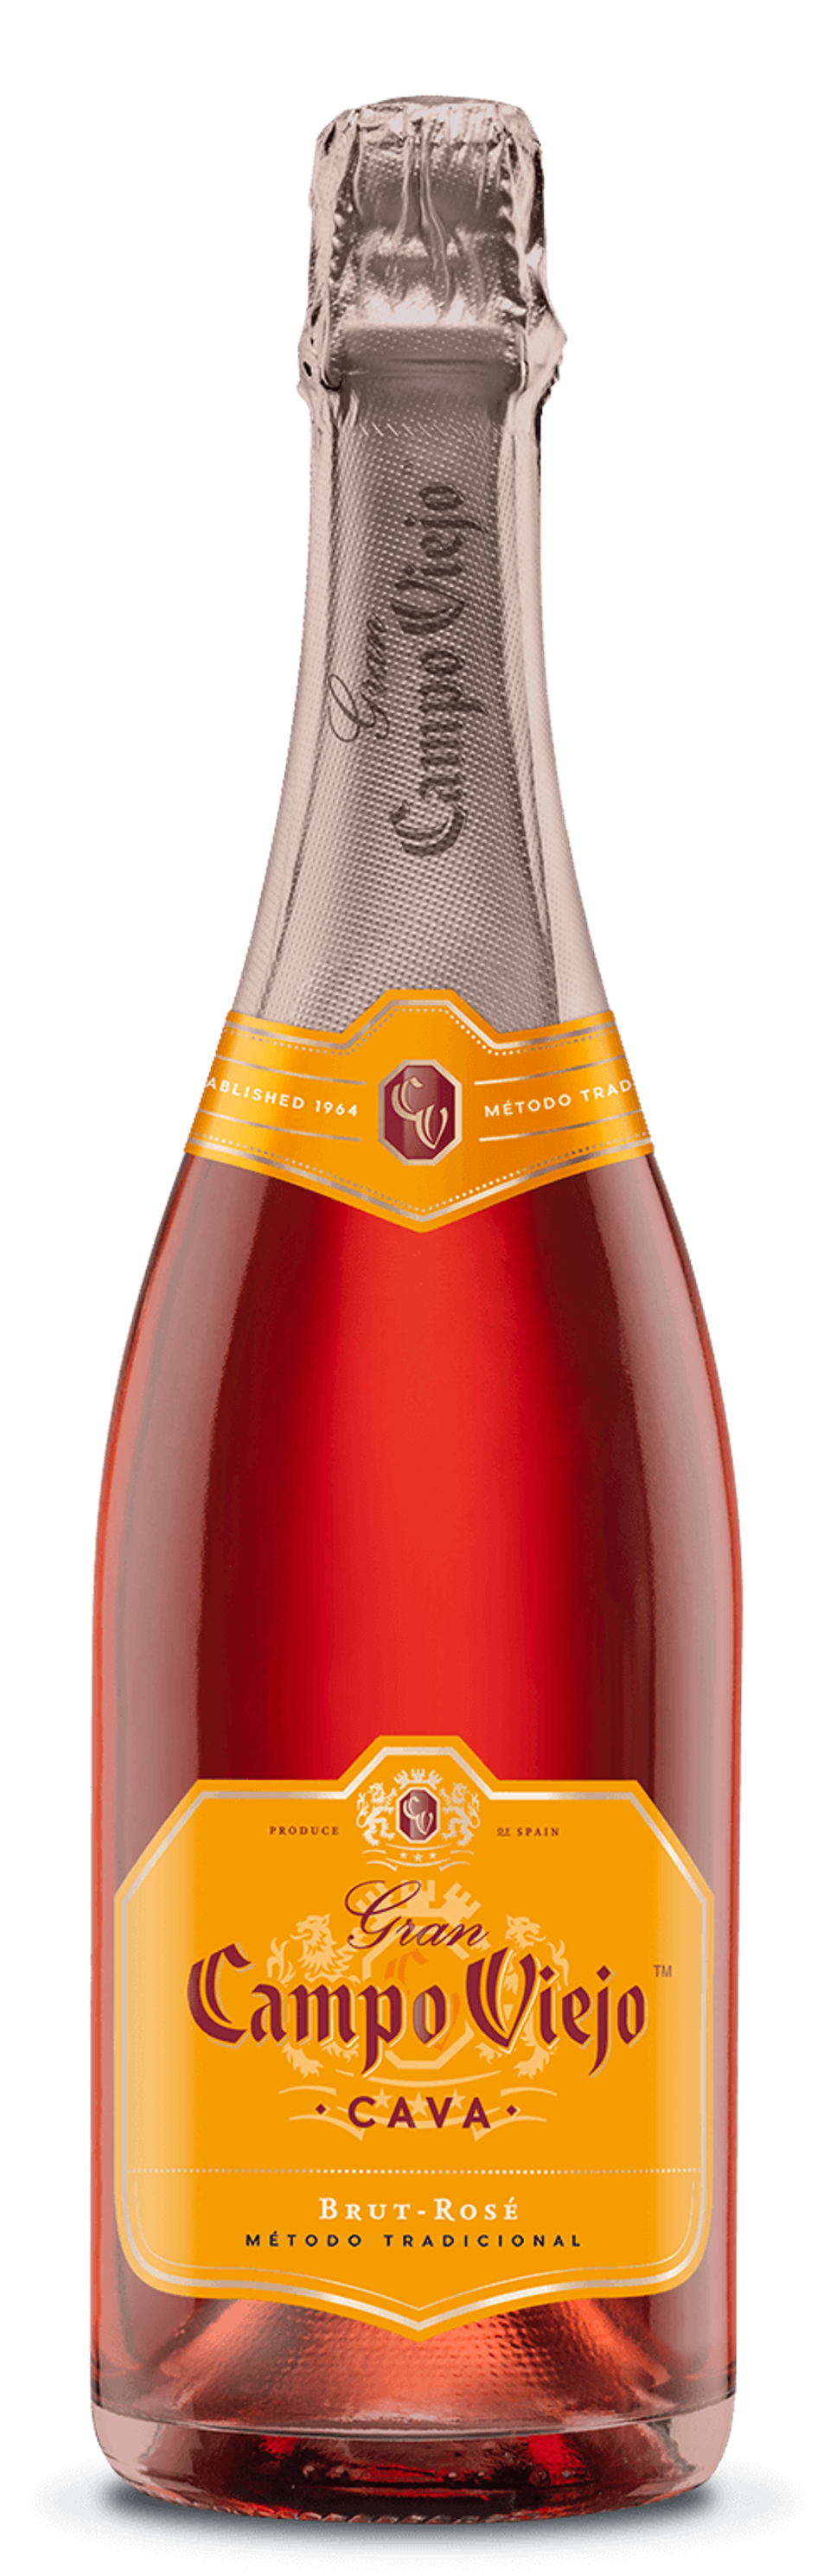 A bottle of Campo Viejo sparkling rosé is made by an all-woman team.